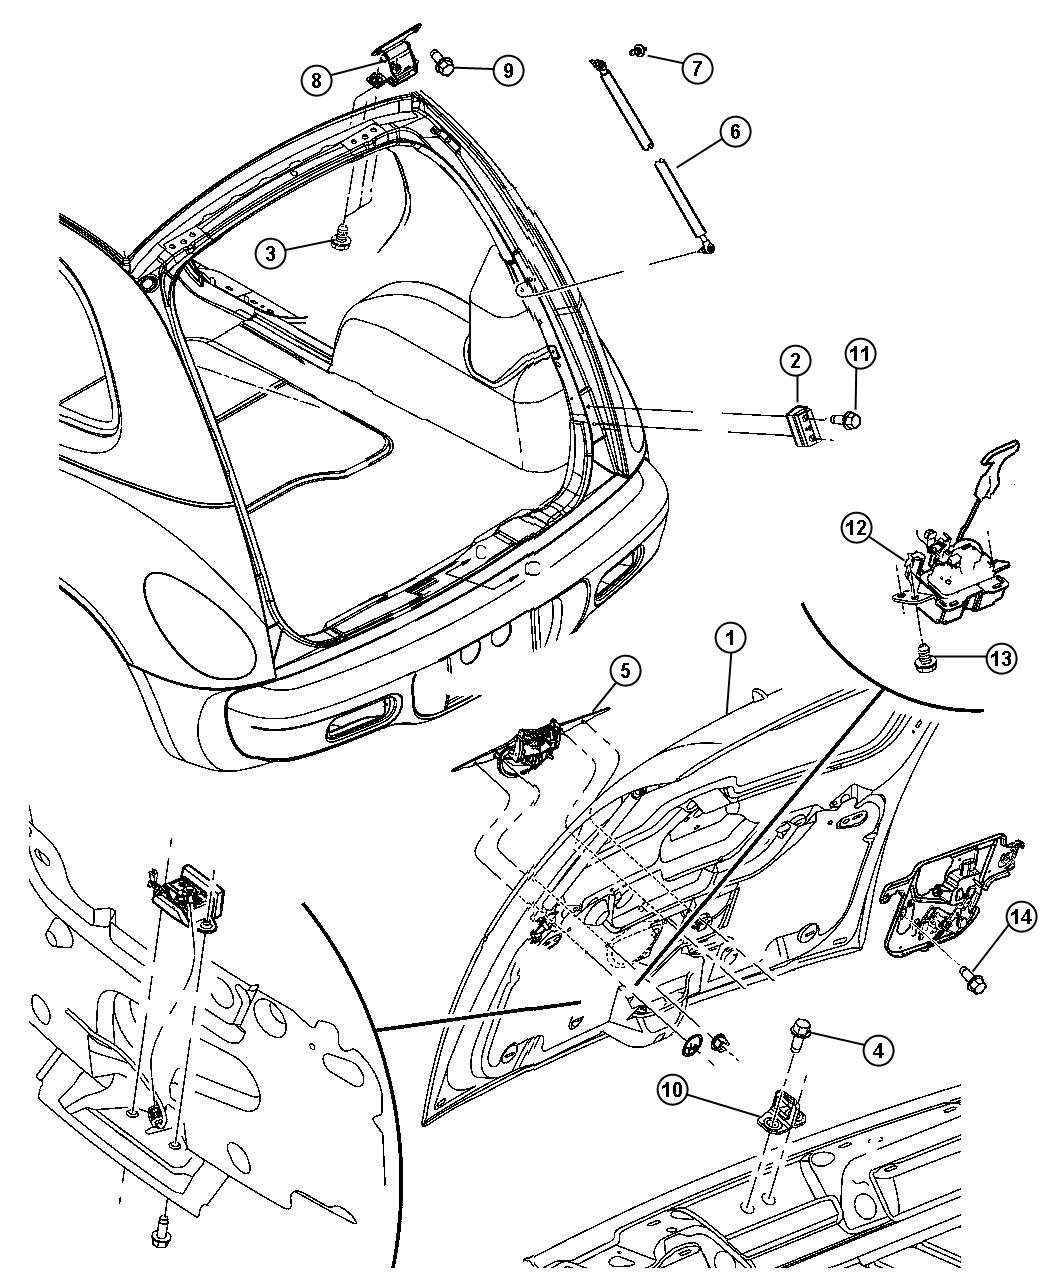 hight resolution of i 06 chrysler pacifica fuse box location besides maxresdefault furthermore lube further also in addition